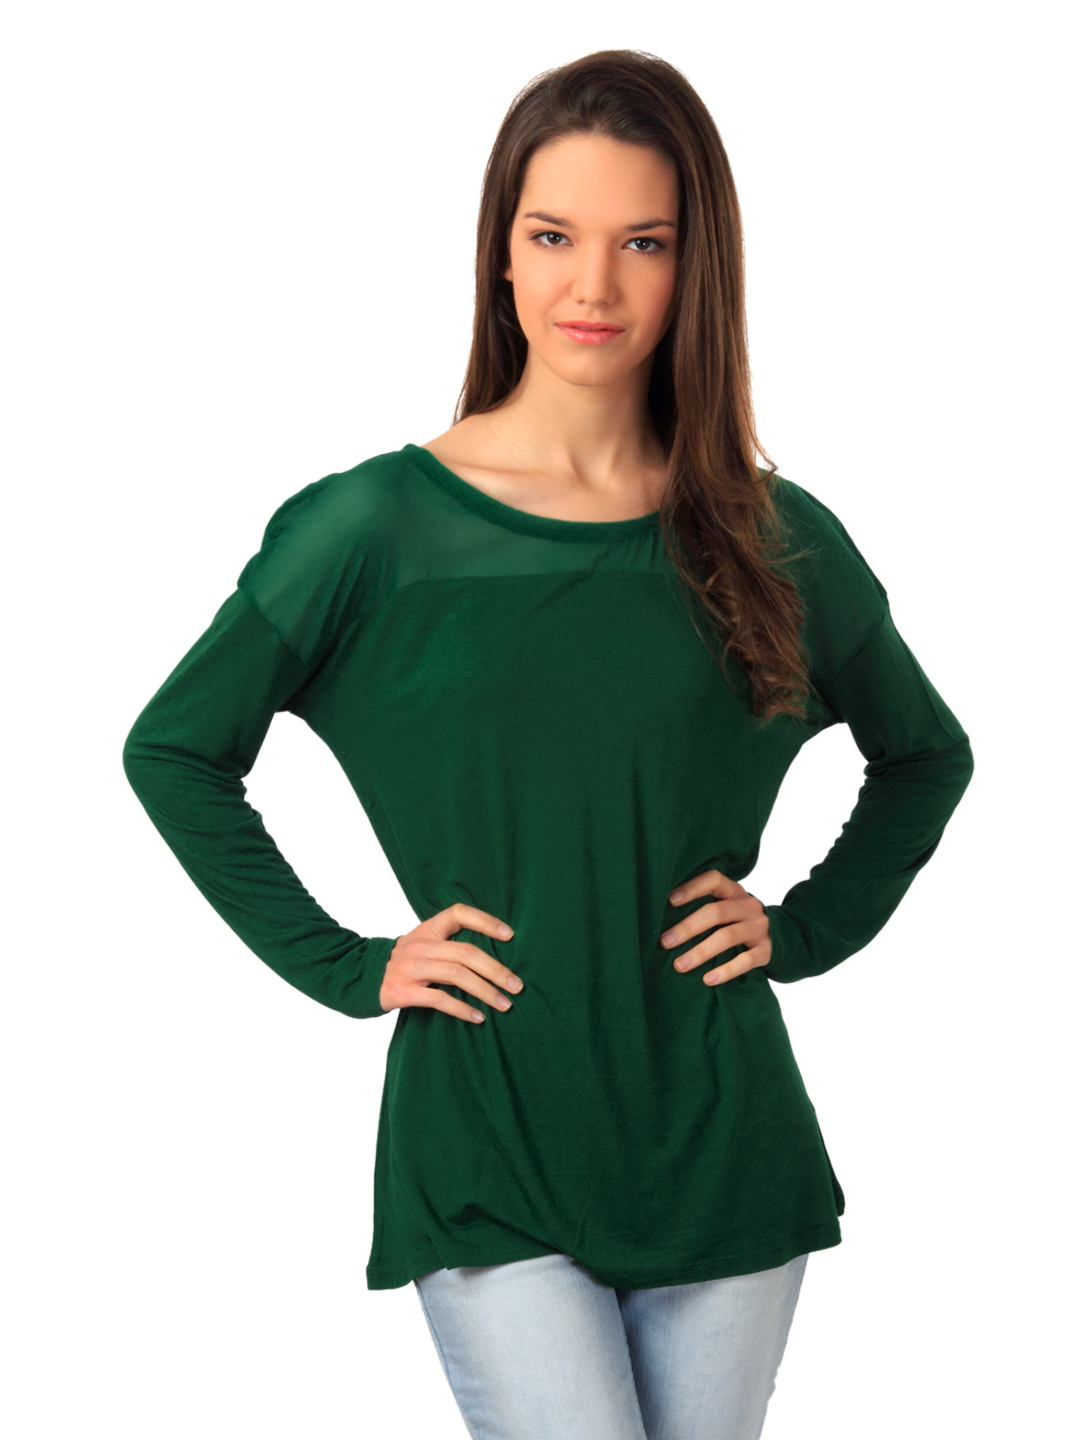 Product Features women blouses half sleeve women blouses plus size women blouses and tops.